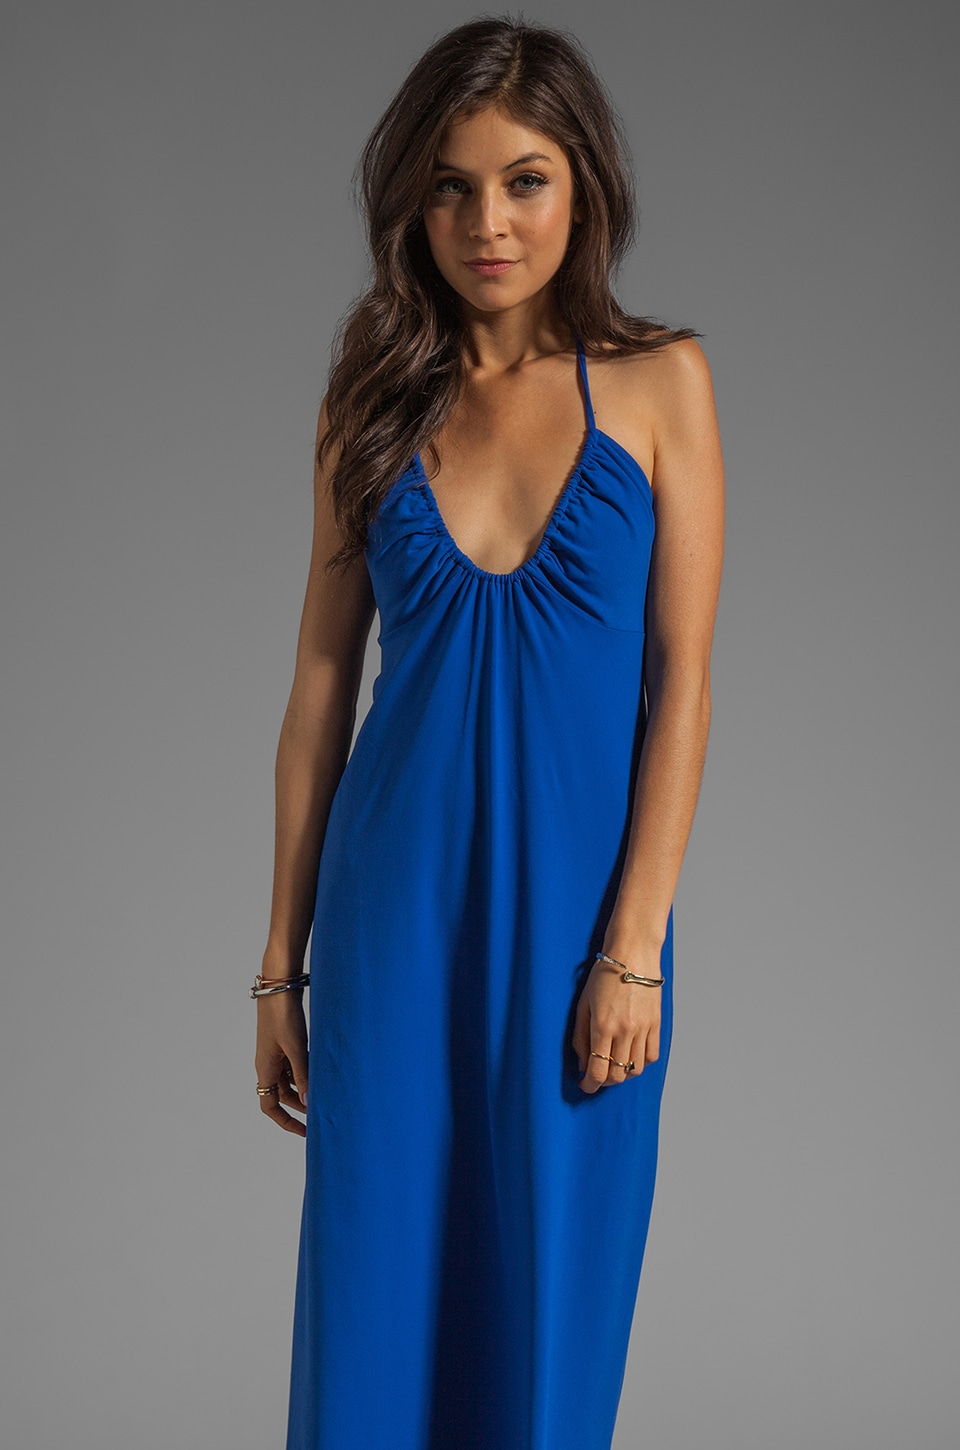 Susana Monaco U Gathered Dress in Lapis